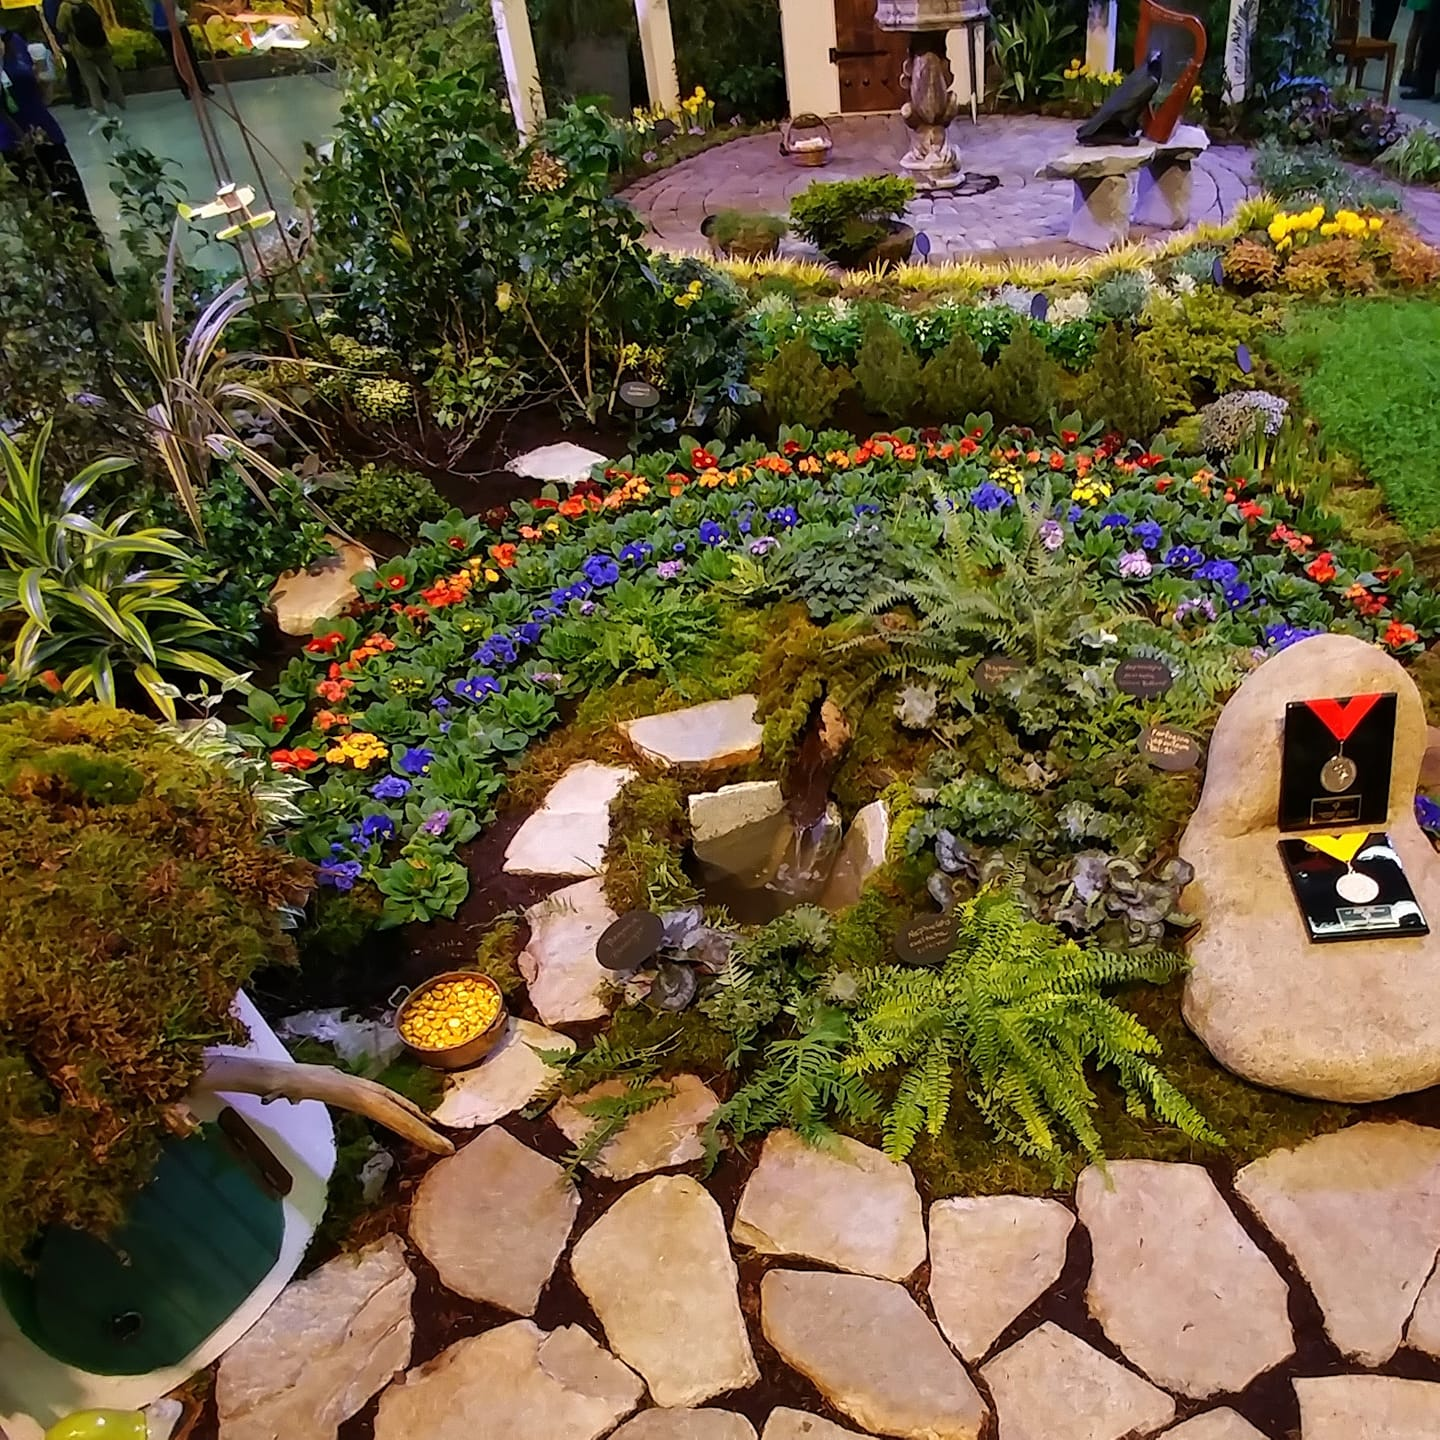 northwest flower & garden show - fun family events and activities in